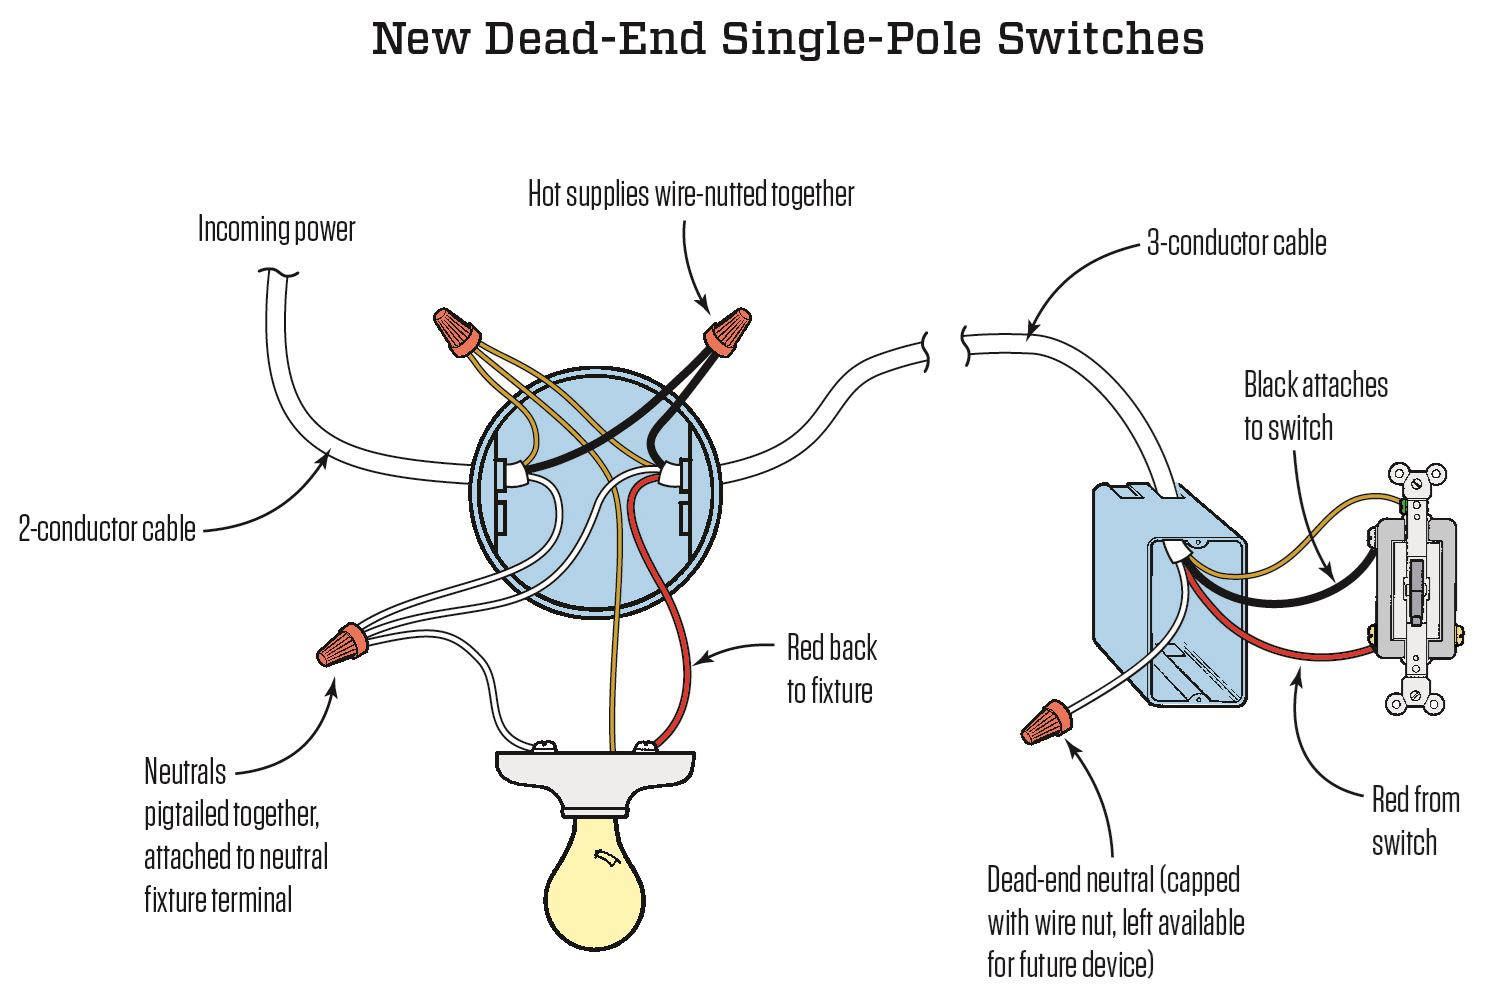 Wiring Two Light Switches From One Power Source Guide And Wire 2 1 Diagram Neutral Necessity Three Way Jlc Online 3 Switch